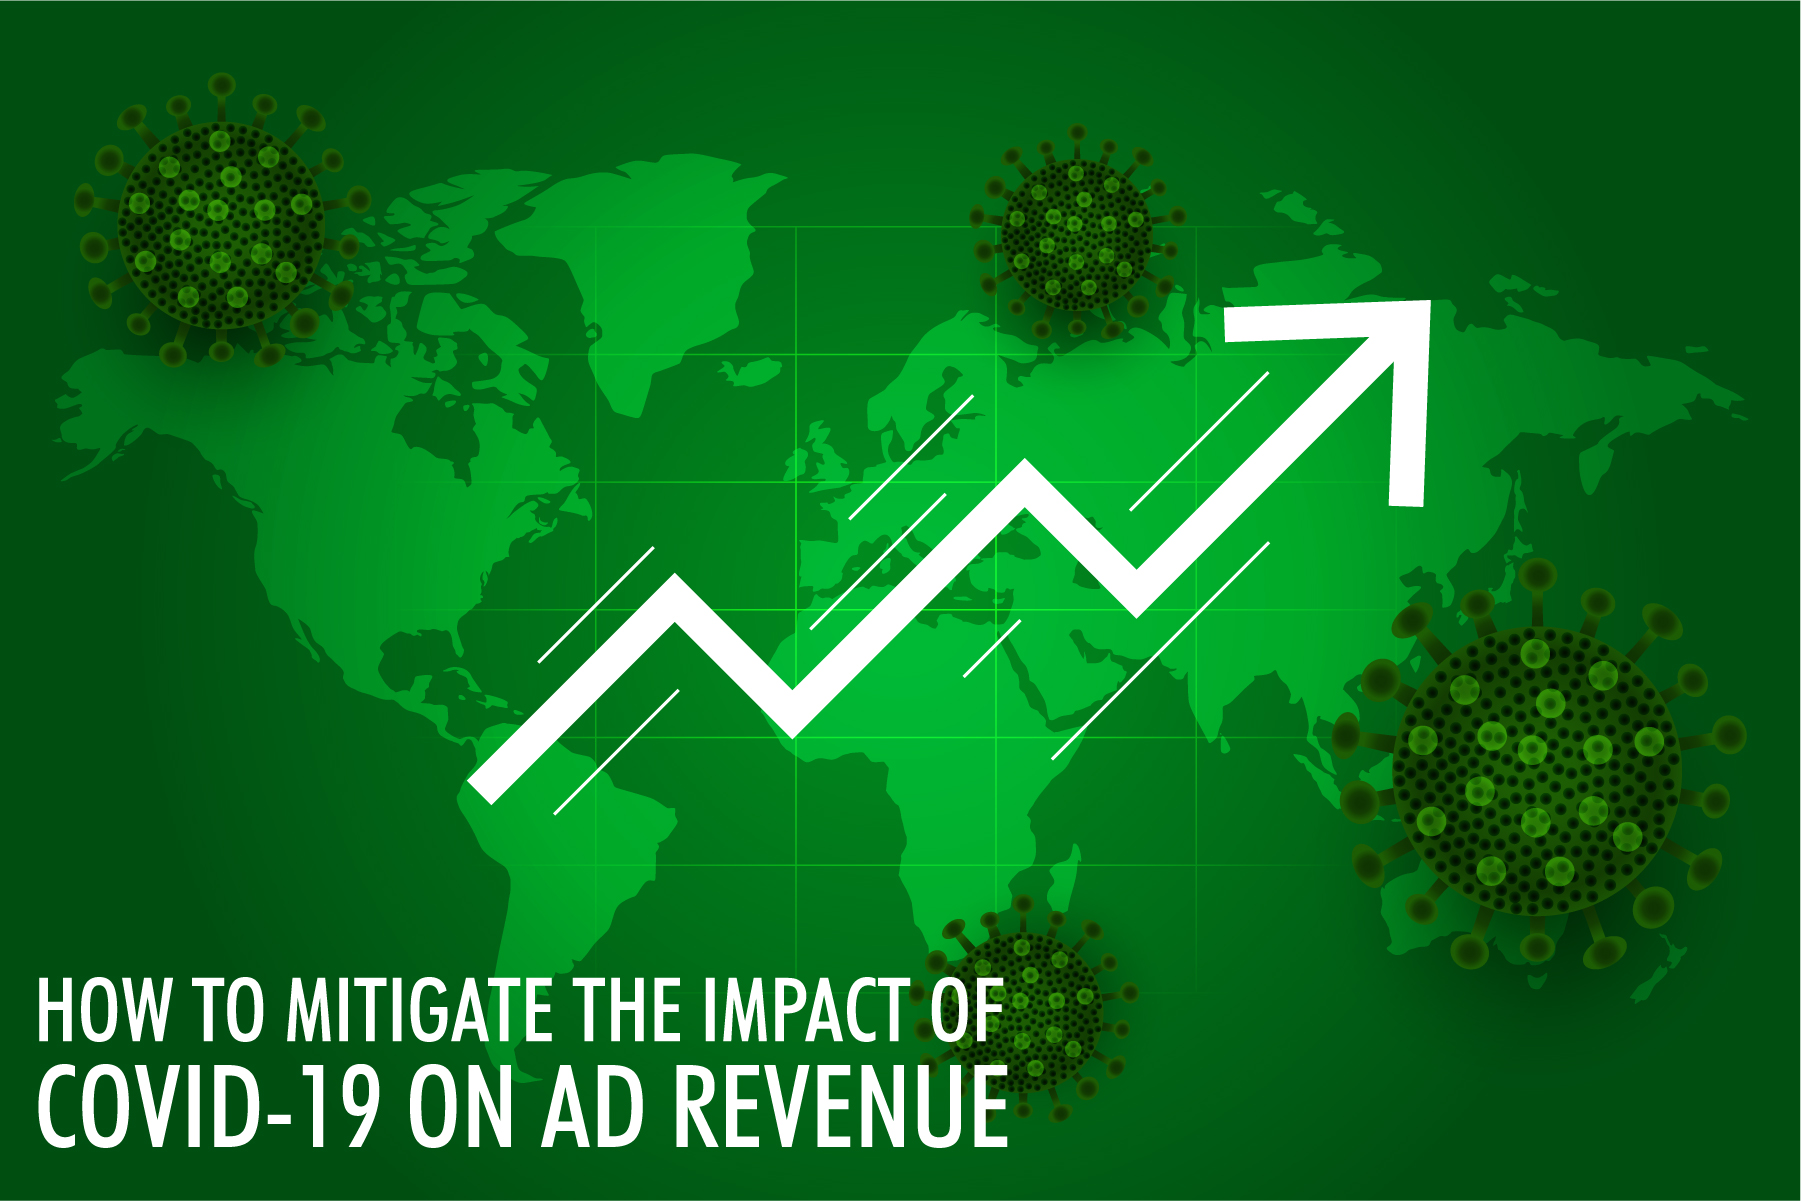 How to Mitigate the Impact of Covid-19 on Ad Revenue?